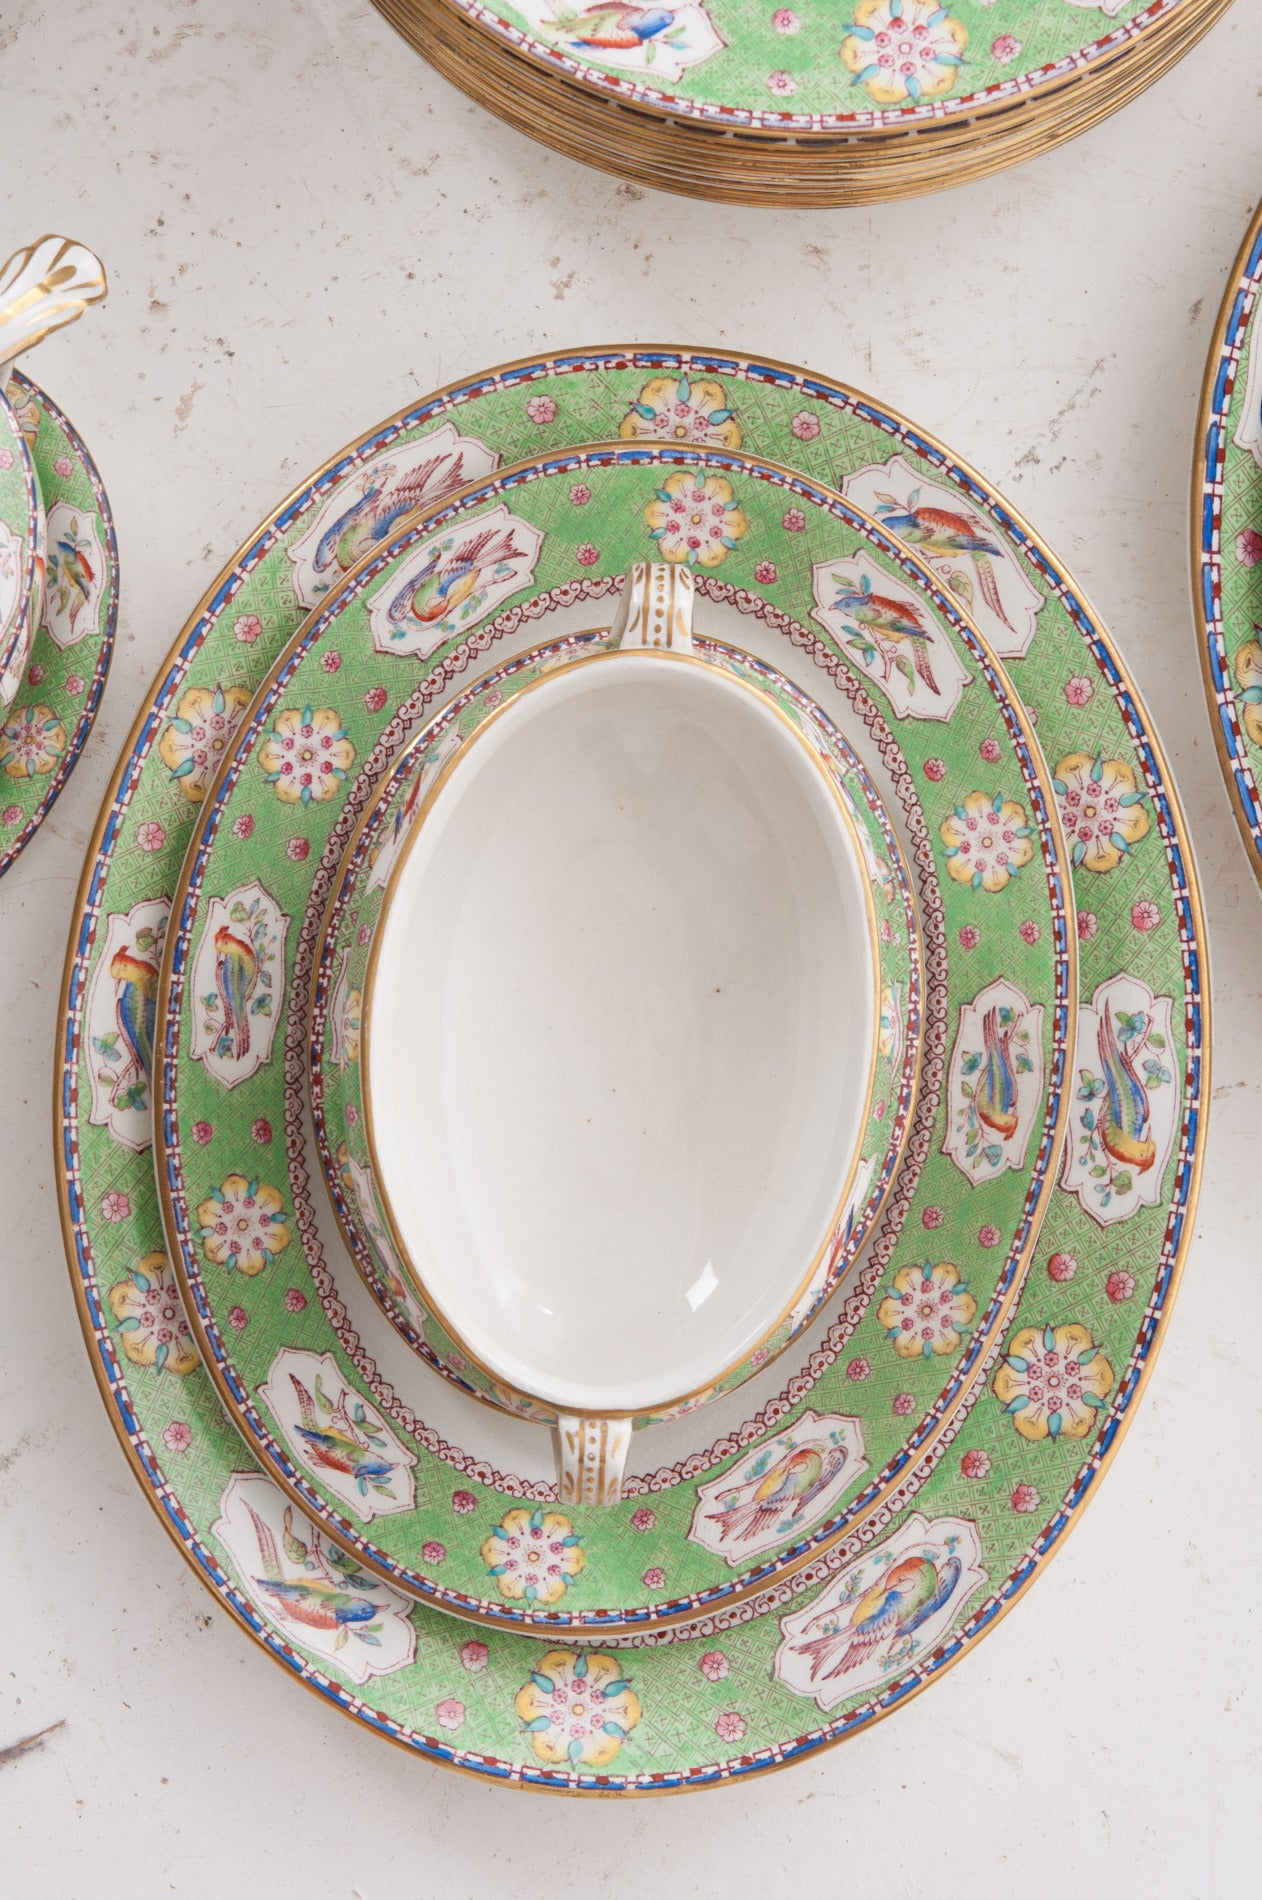 English Ashworth Brothers ironstone dinner service, all handpainted before 1890.